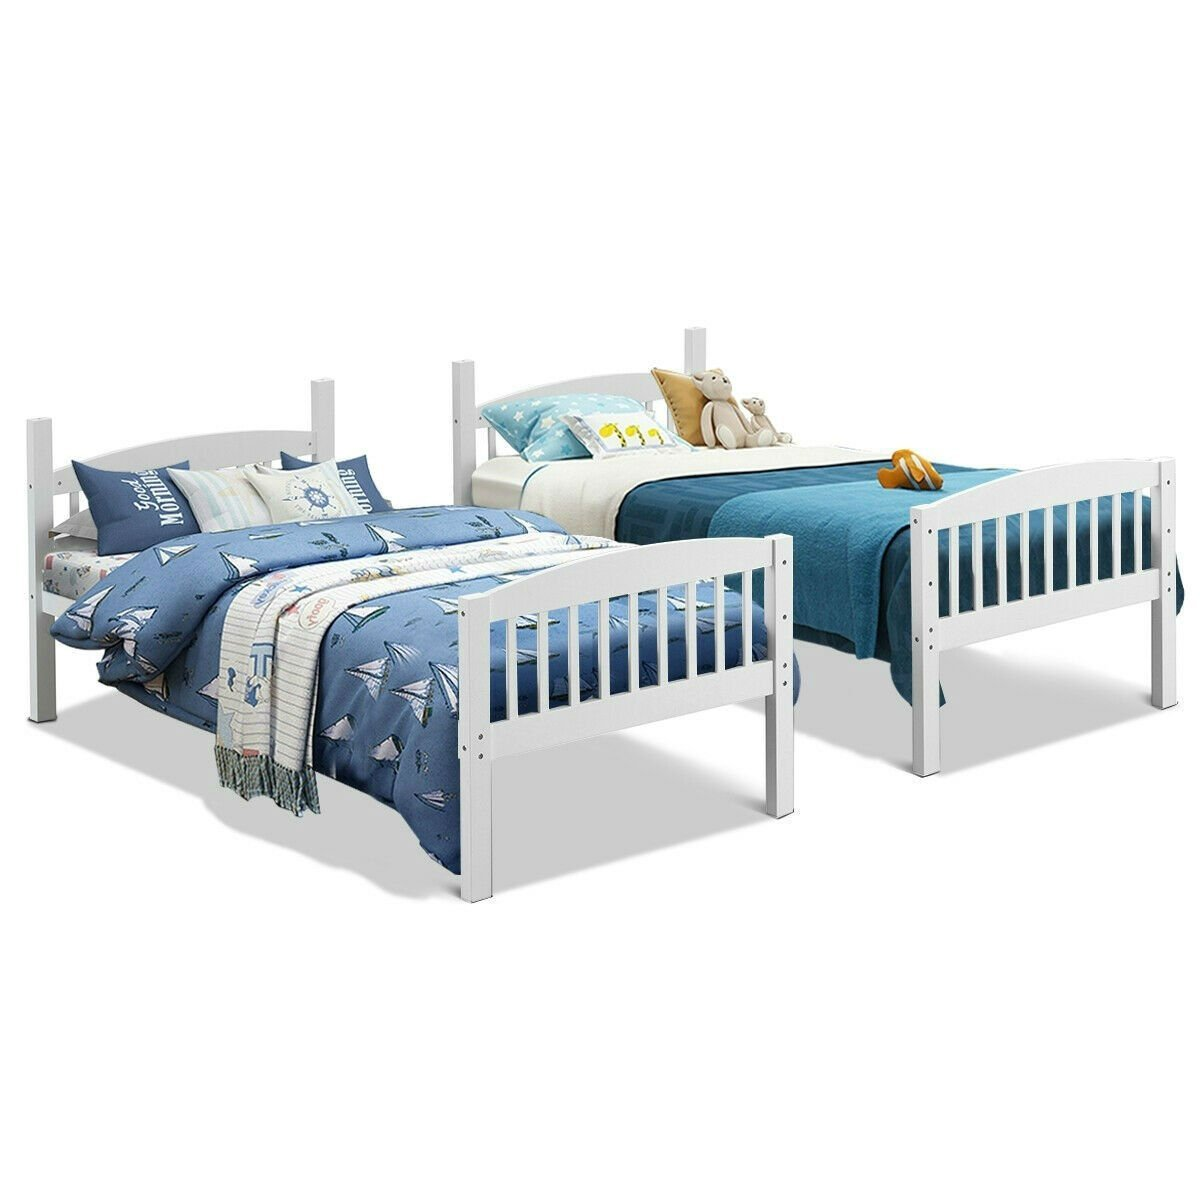 Honey Twin Size Bunk Bed.